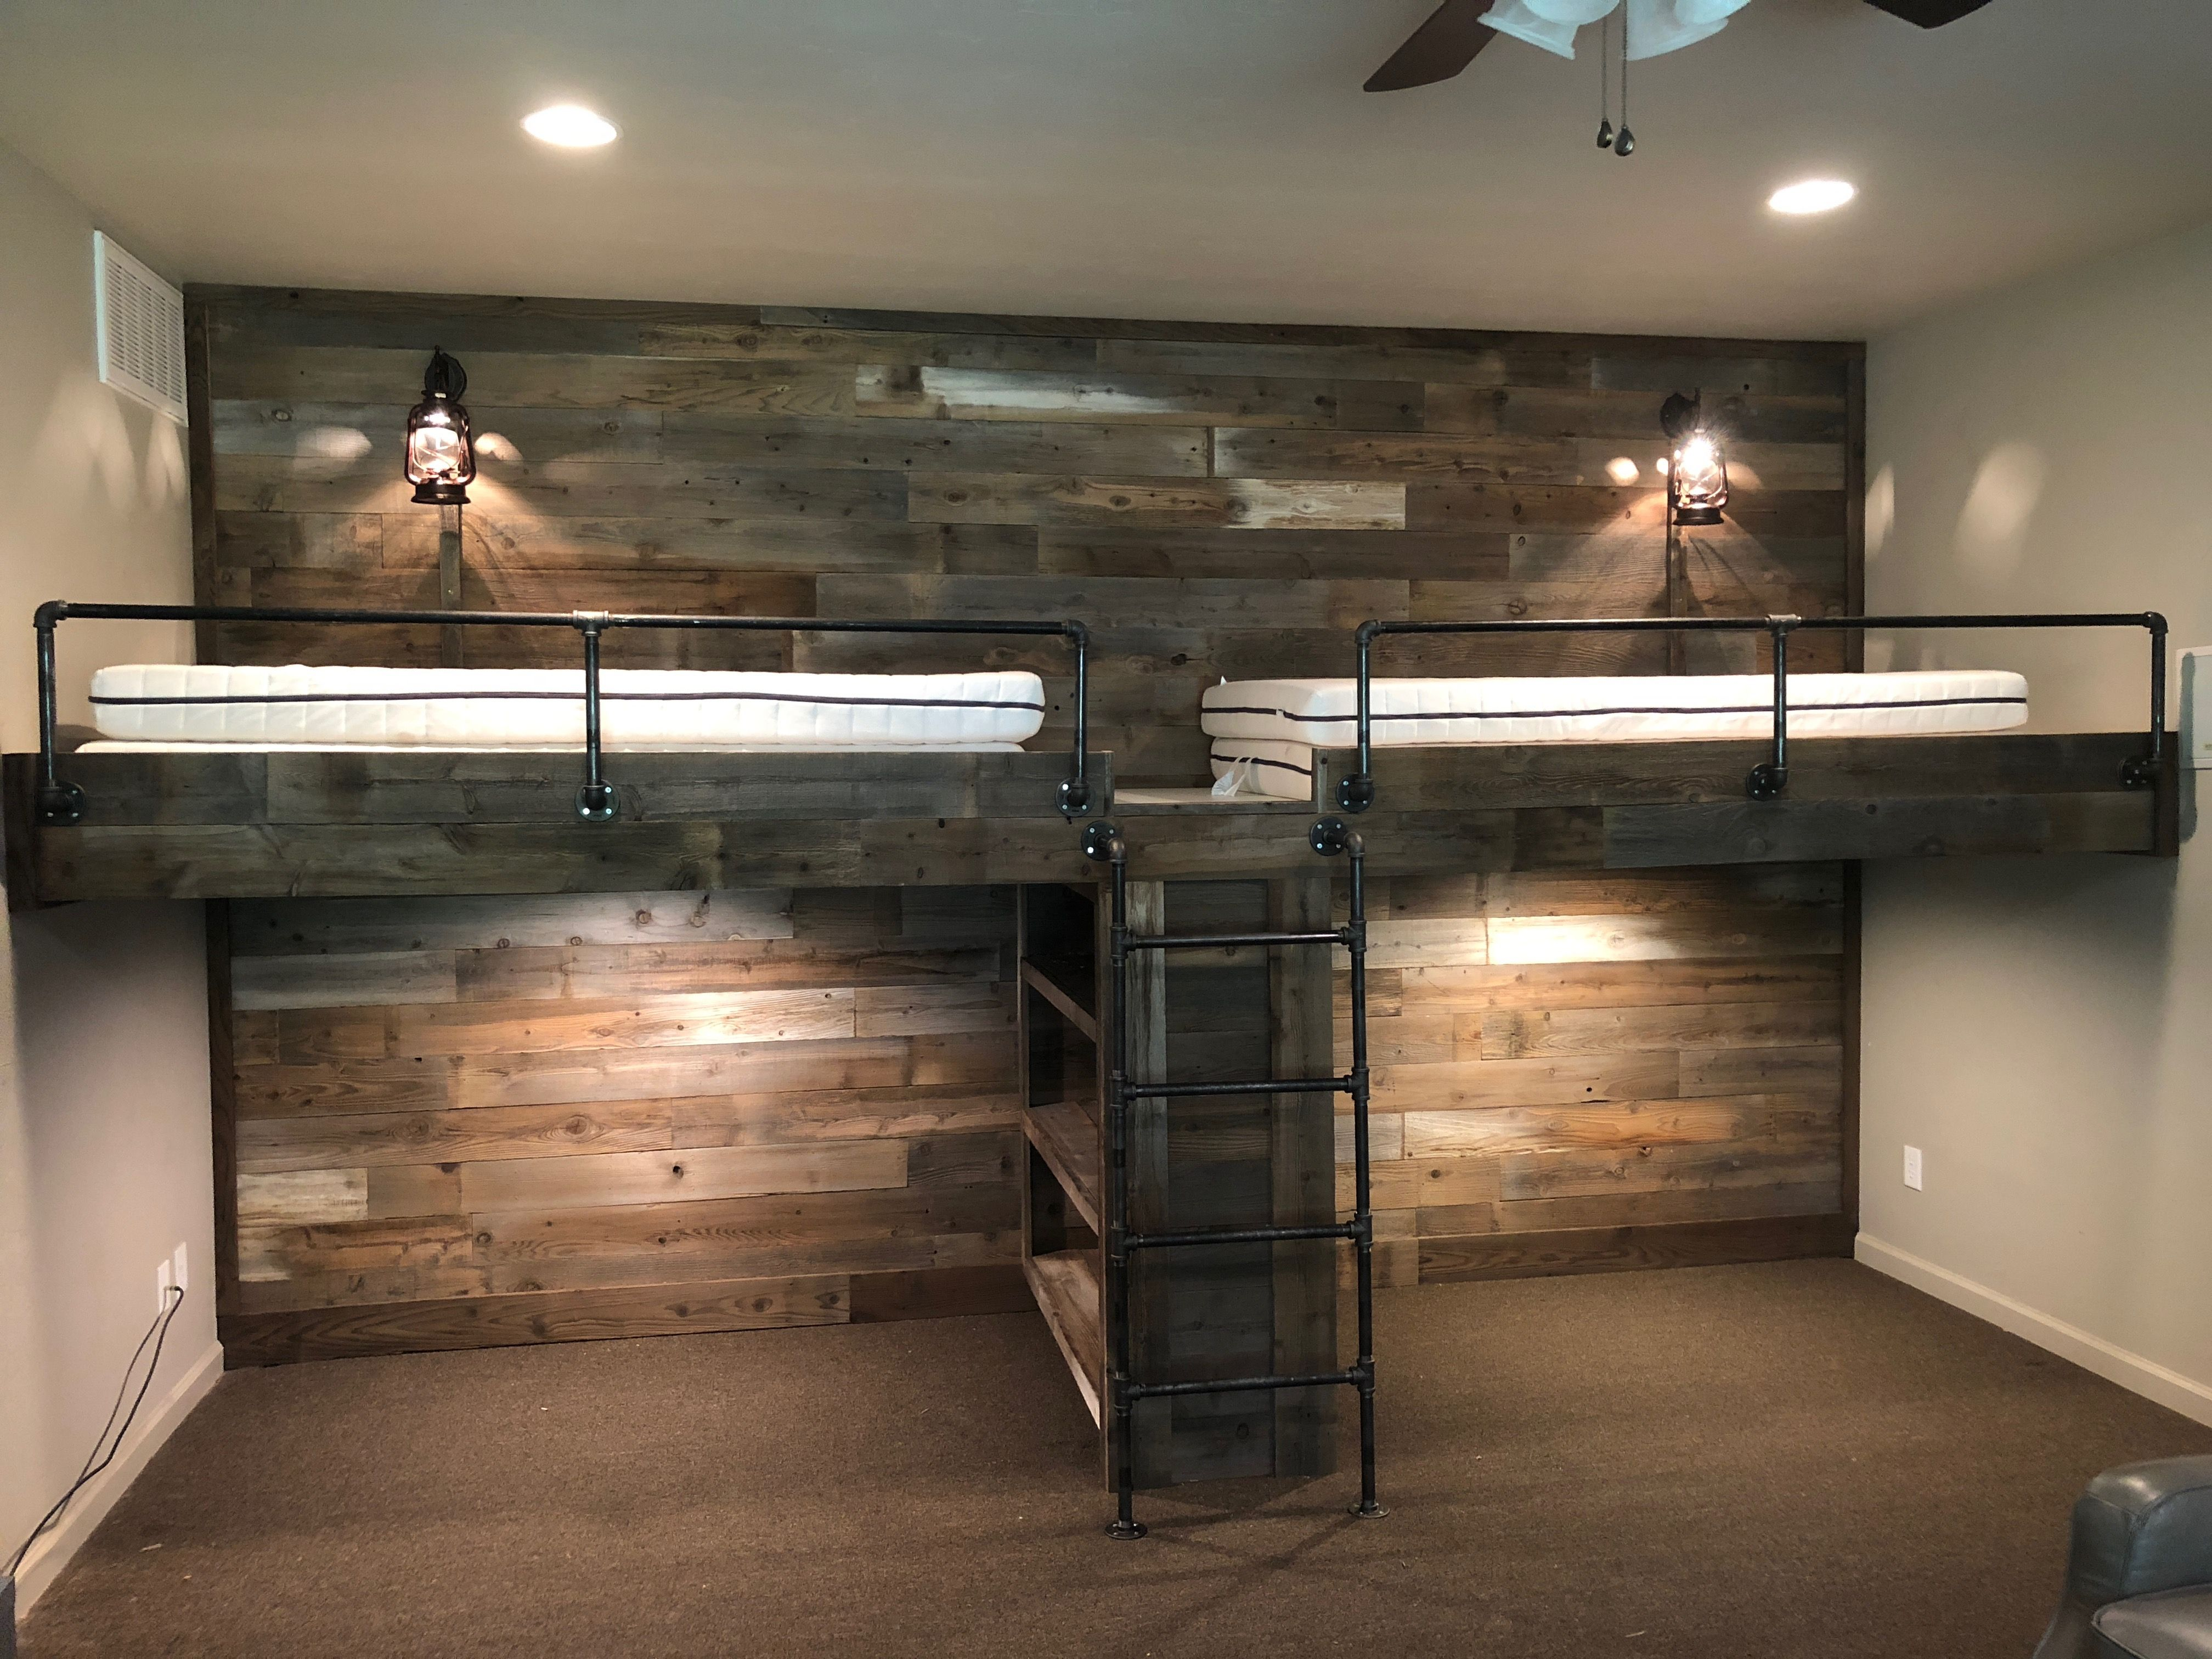 Pin By Amanda Mirabile On House Ideas In 2020 Bunk Bed Rooms